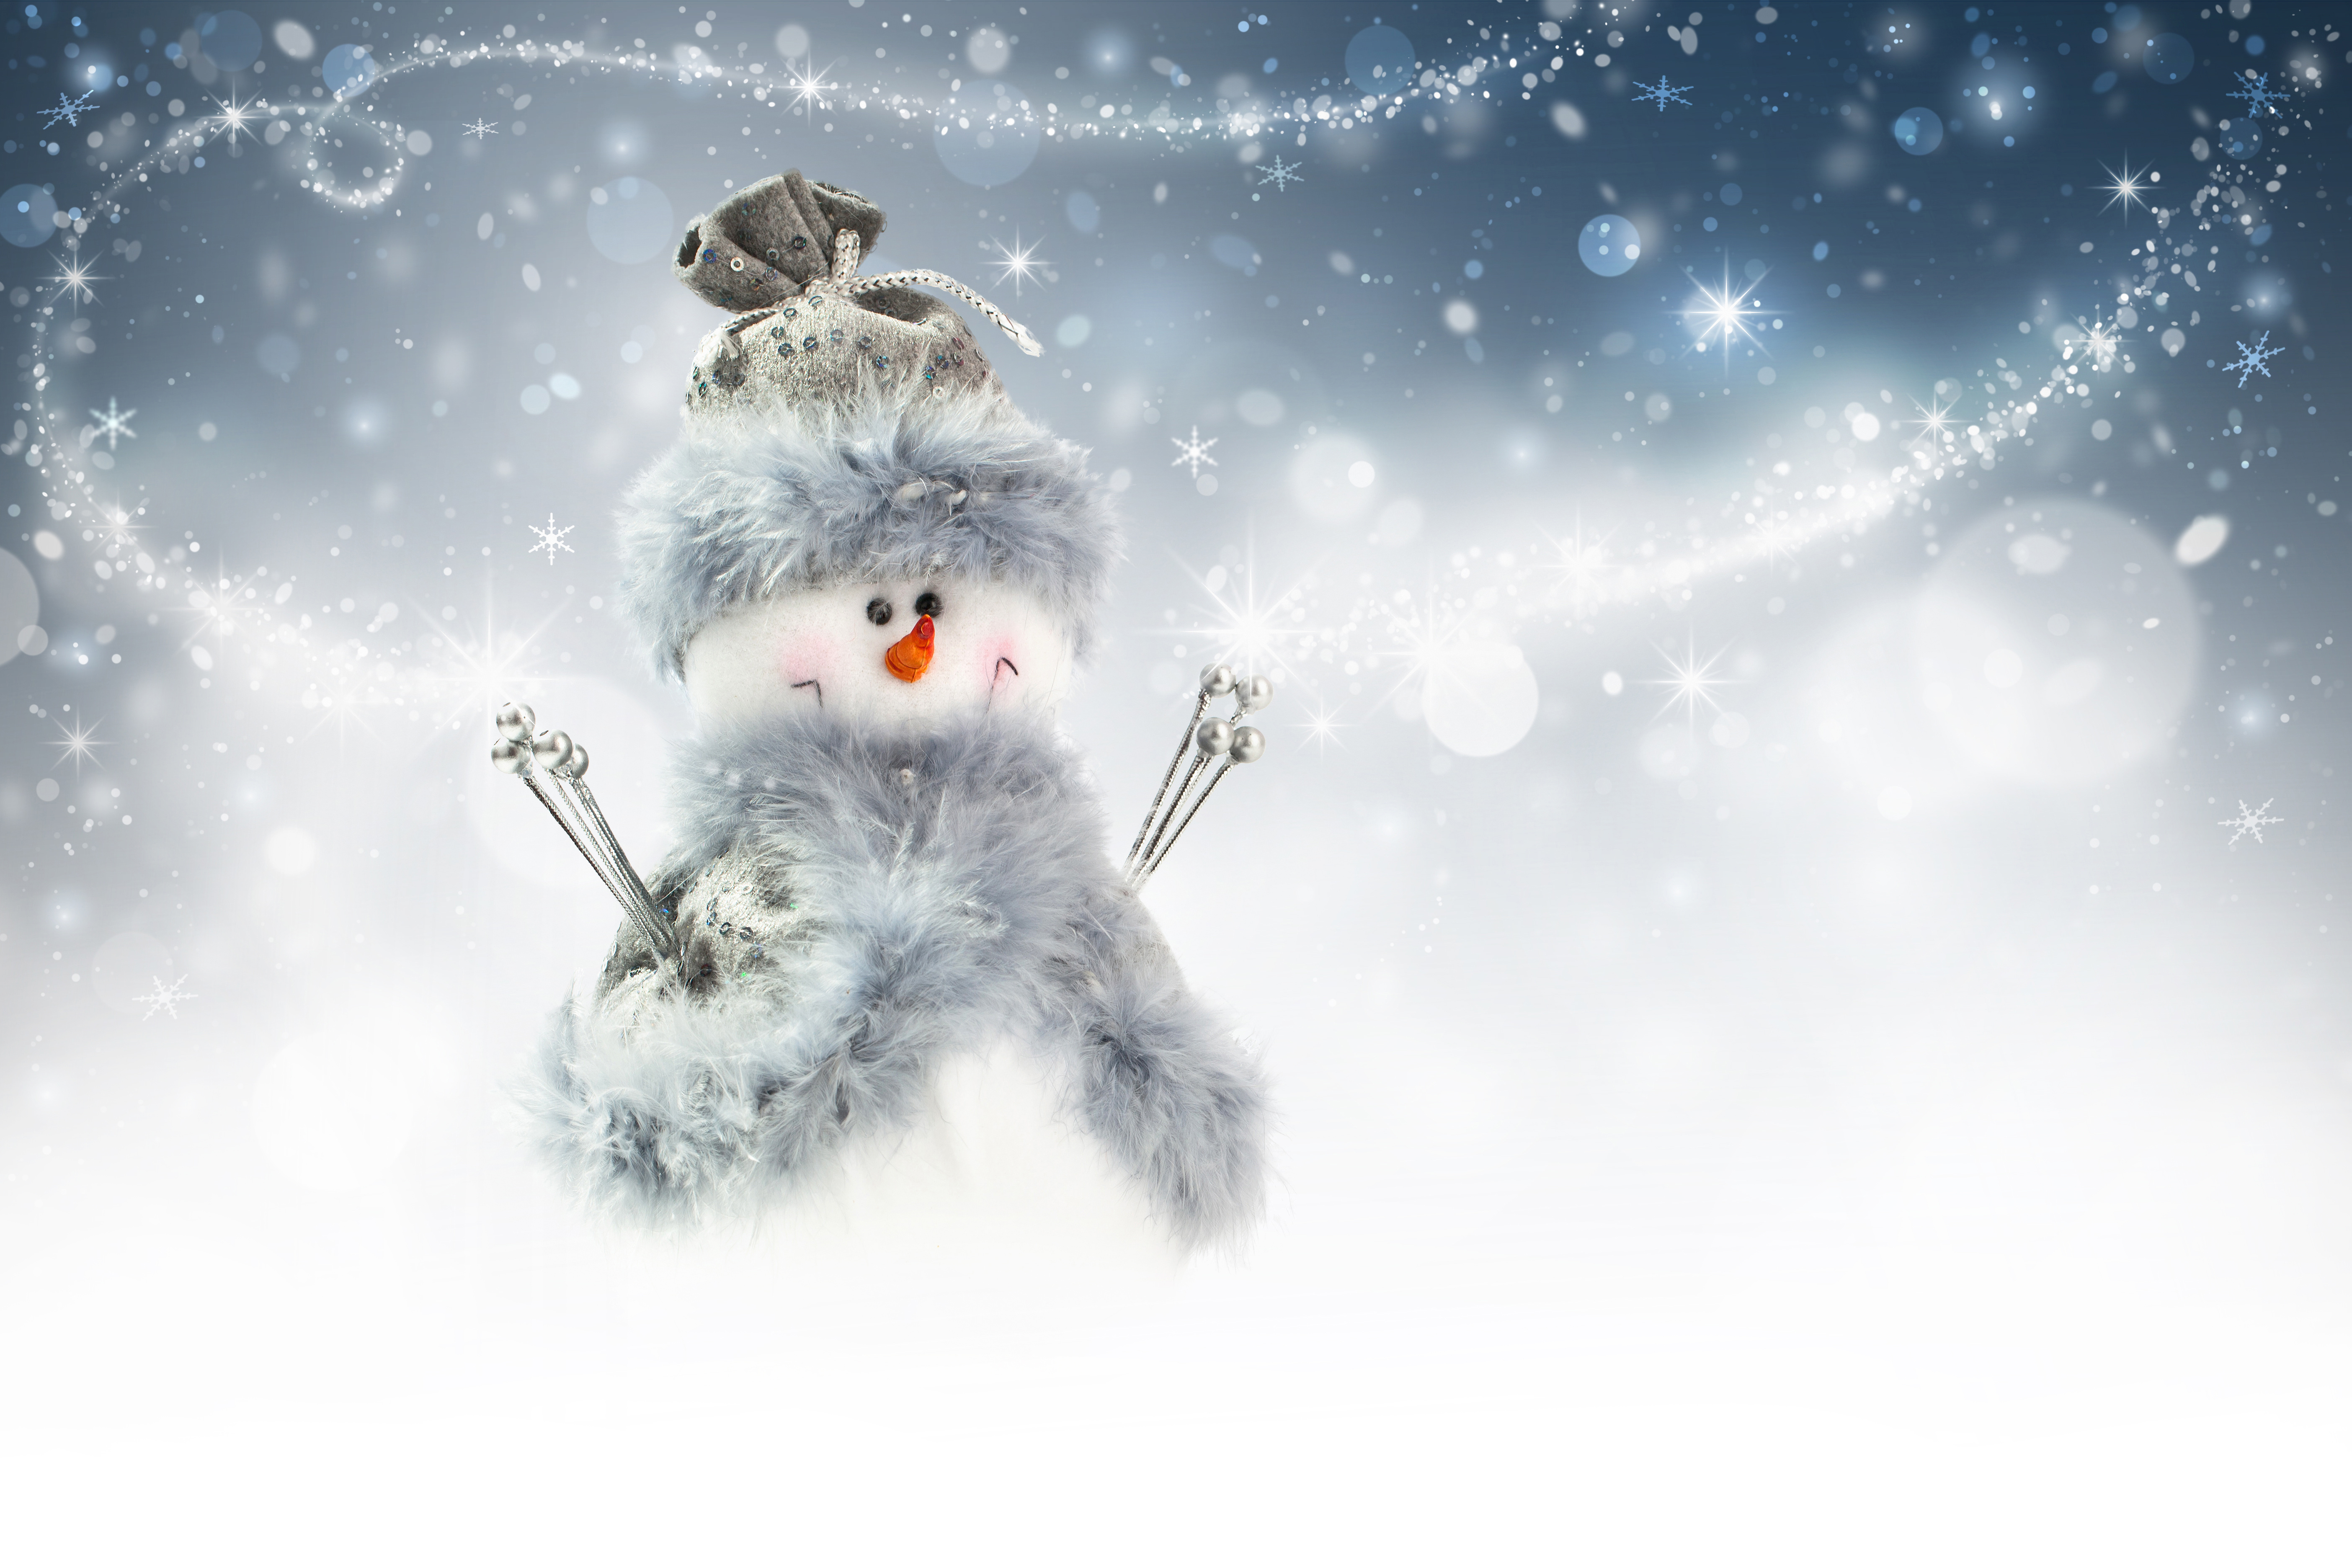 snow winter christmas new year snowman